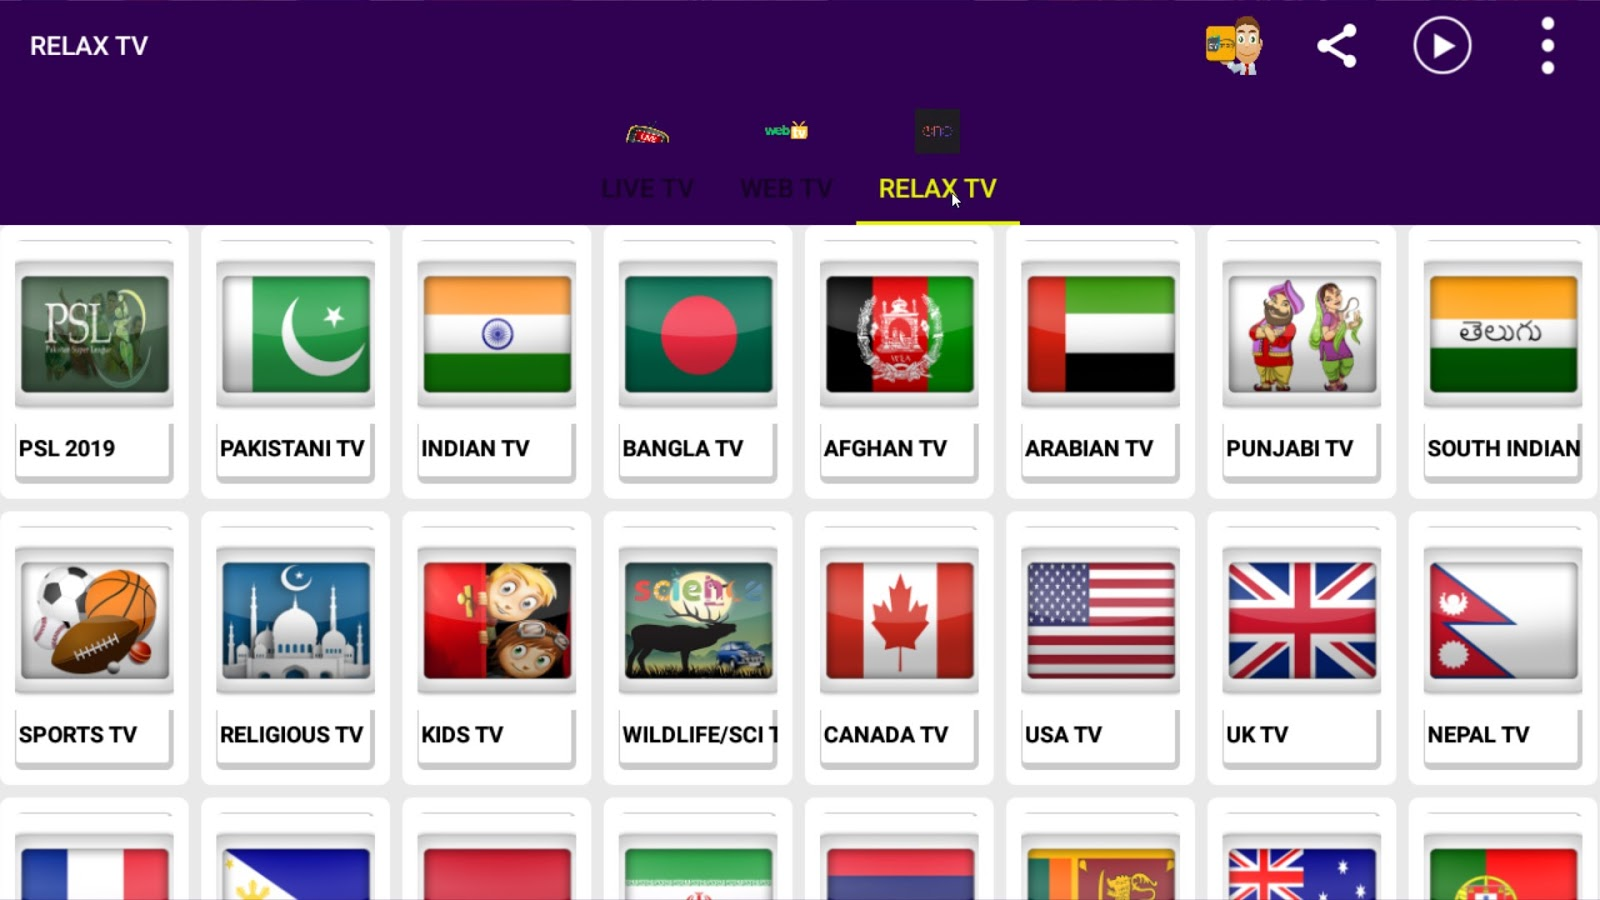 Relax Iptv Apk App Free Live TV On All Android Devices - New